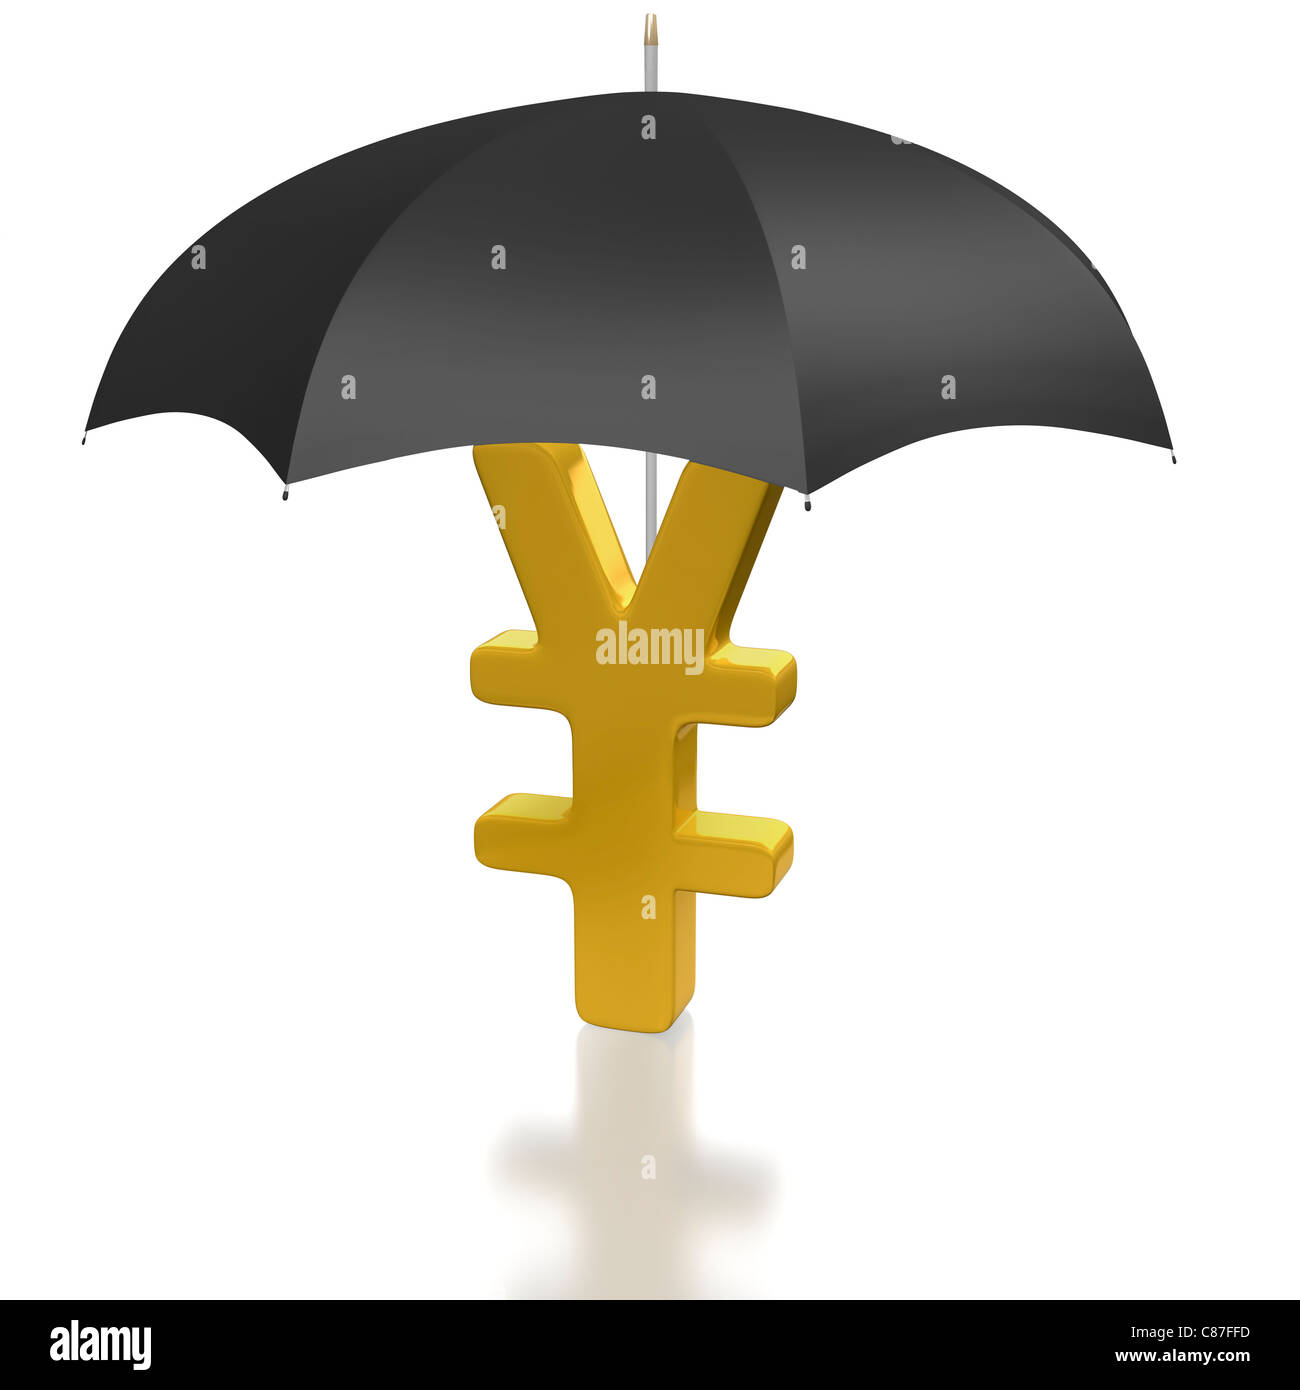 Japanese yen symbol covered by a protecting umbrella stock photo japanese yen symbol covered by a protecting umbrella biocorpaavc Choice Image